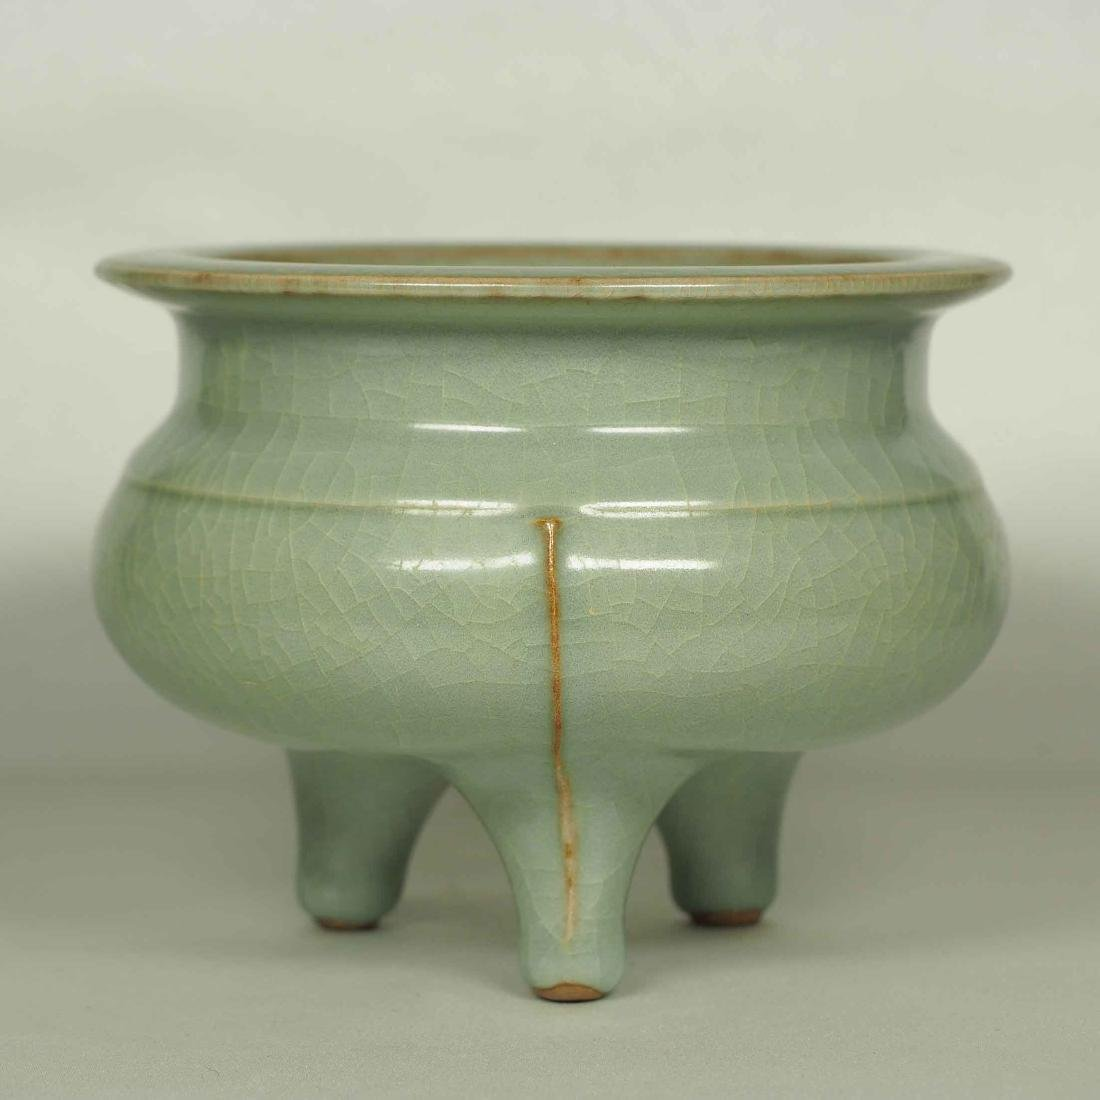 Longquan Tripod Censer, Southern Song Dynasty